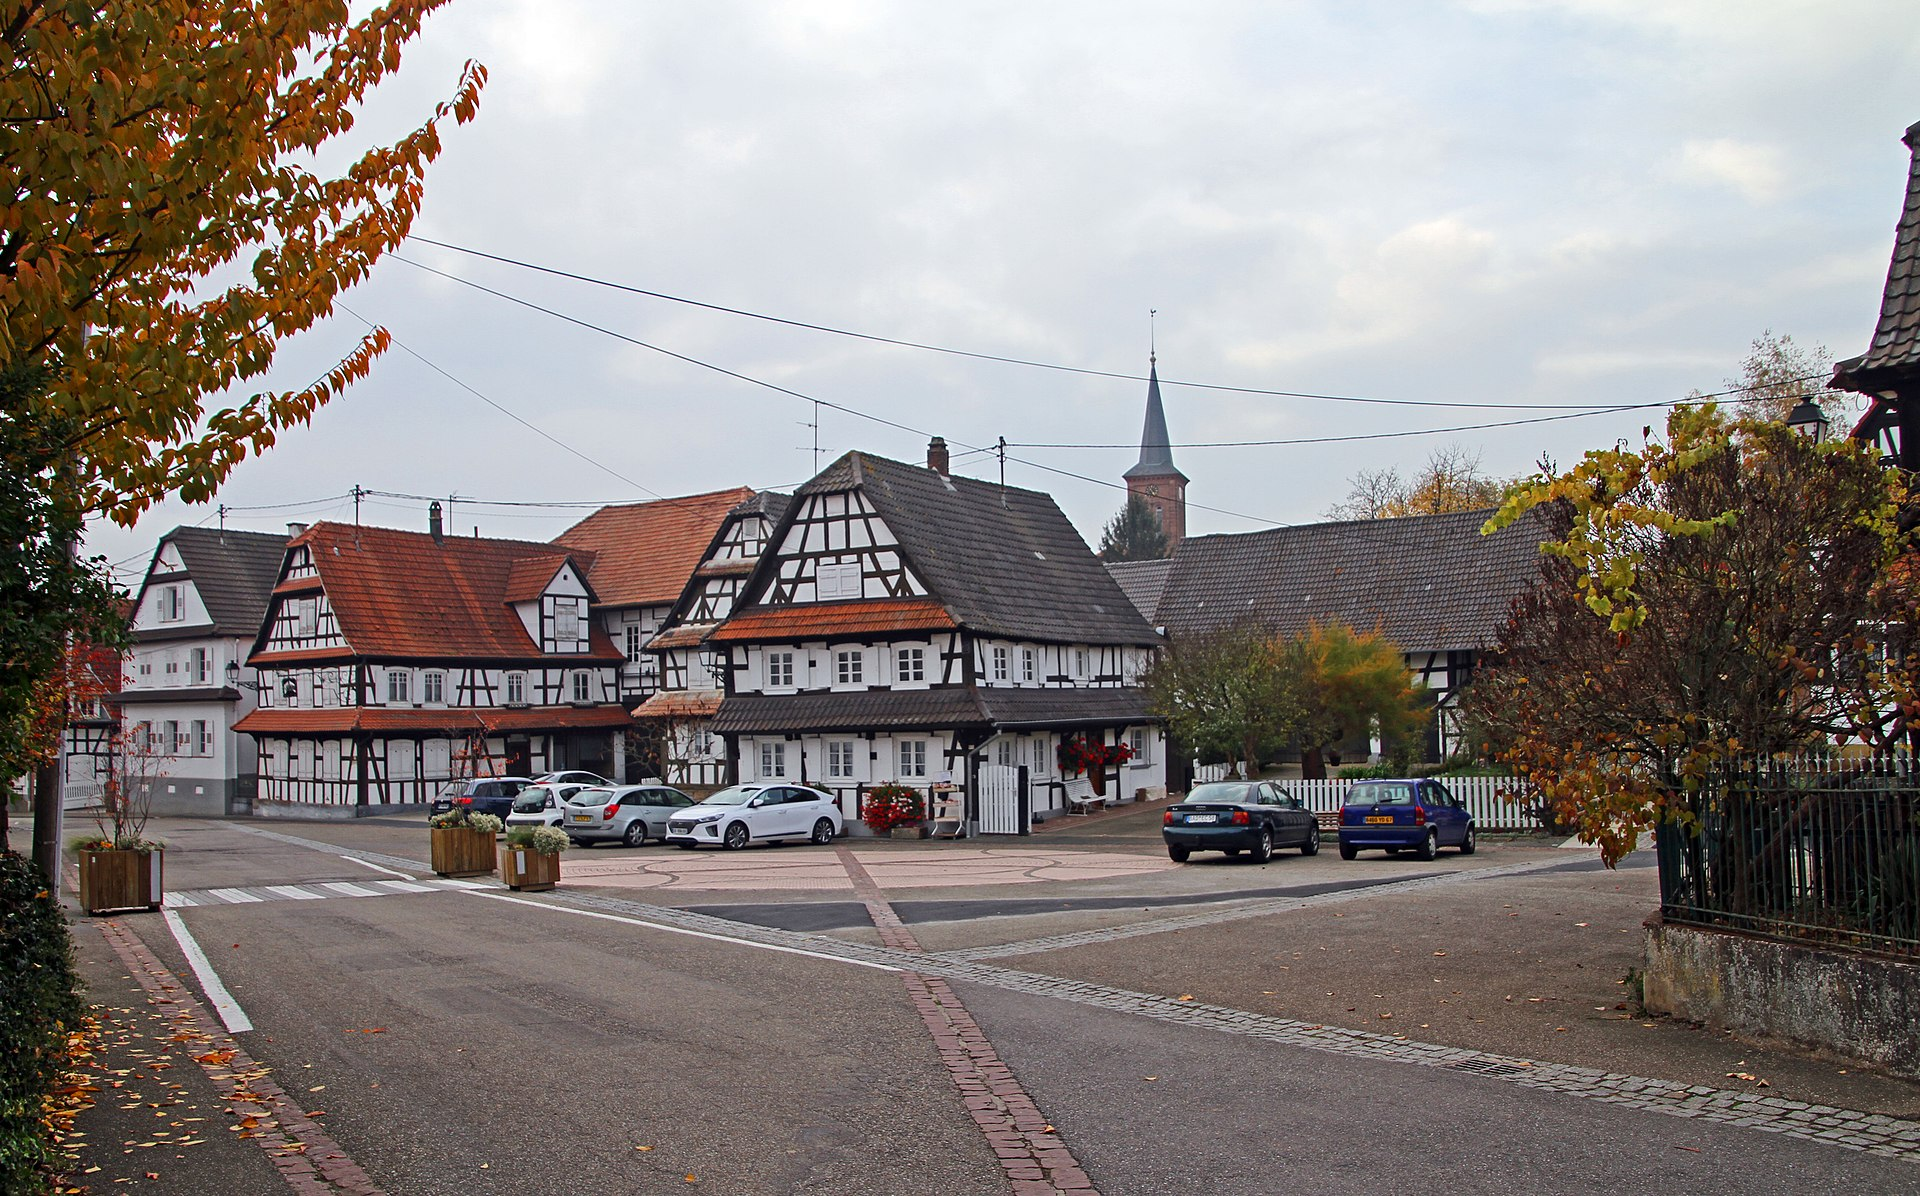 Main Street in Hunspach